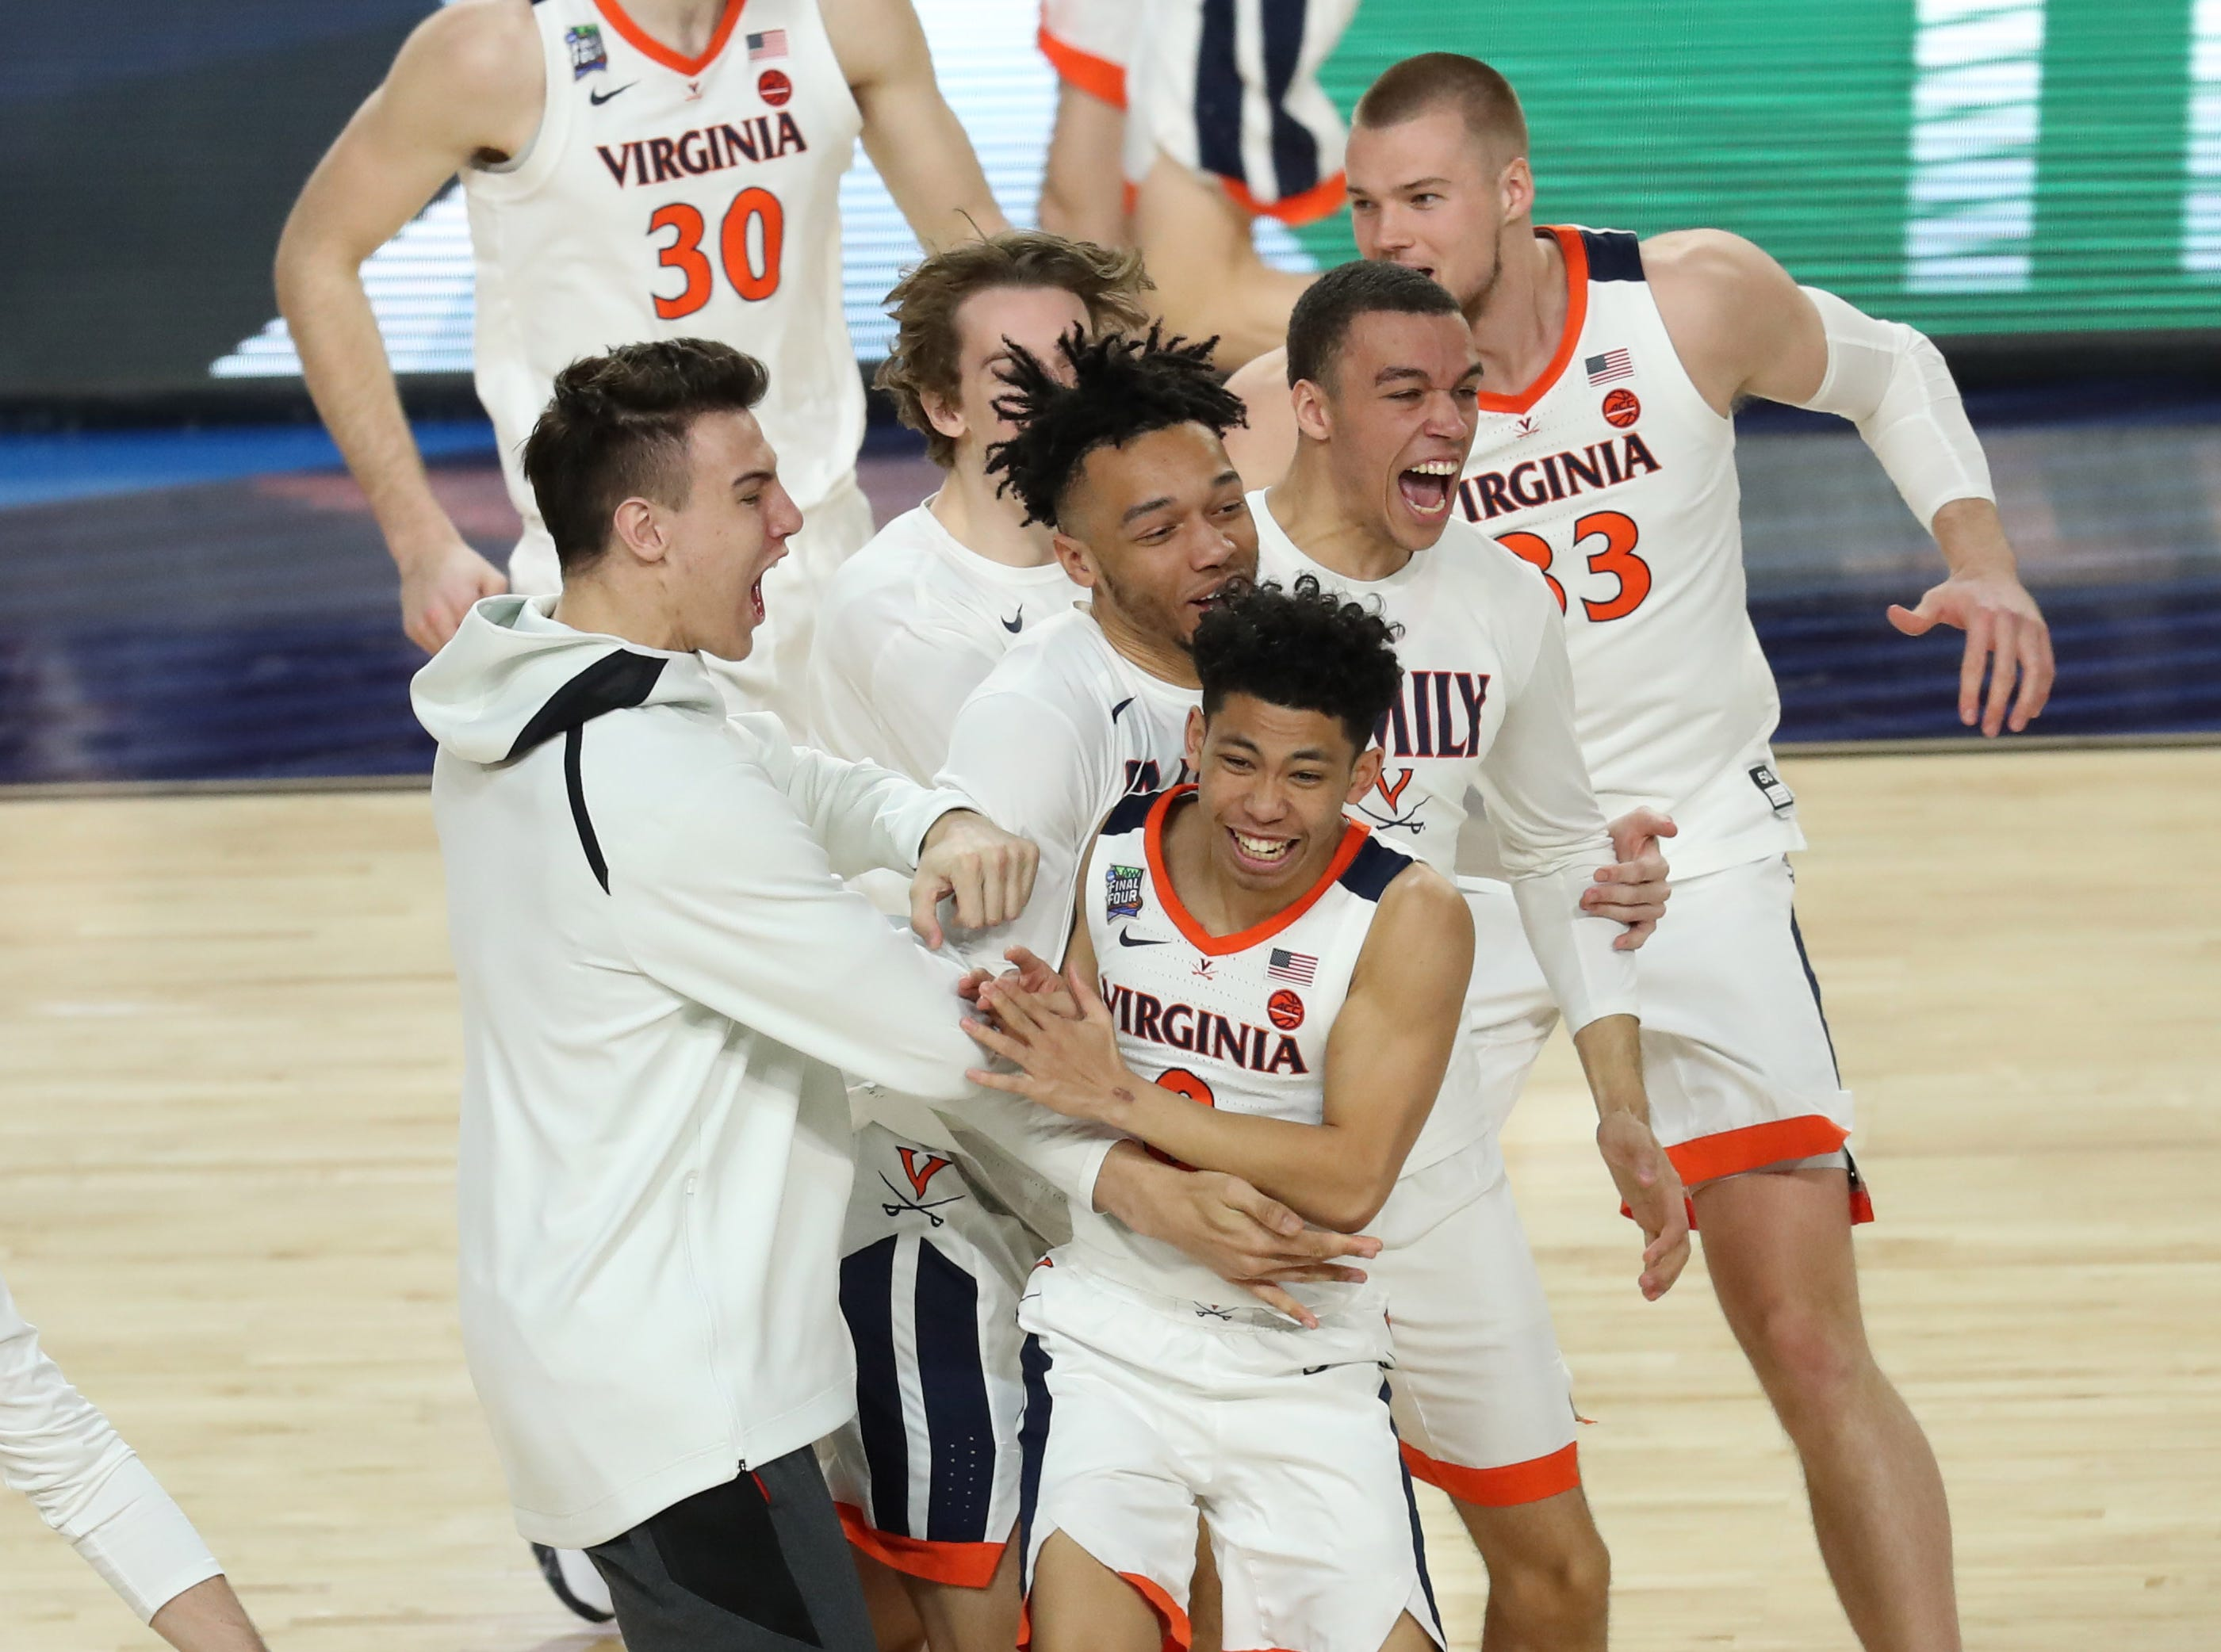 Apr 8, 2019; Minneapolis, MN, USA; Virginia Cavaliers guard Kihei Clark (0) and teammates celebrate after defeating the Texas Tech Red Raiders in the championship game of the 2019 men's Final Four at US Bank Stadium. Mandatory Credit: Brace Hemmelgarn-USA TODAY Sports